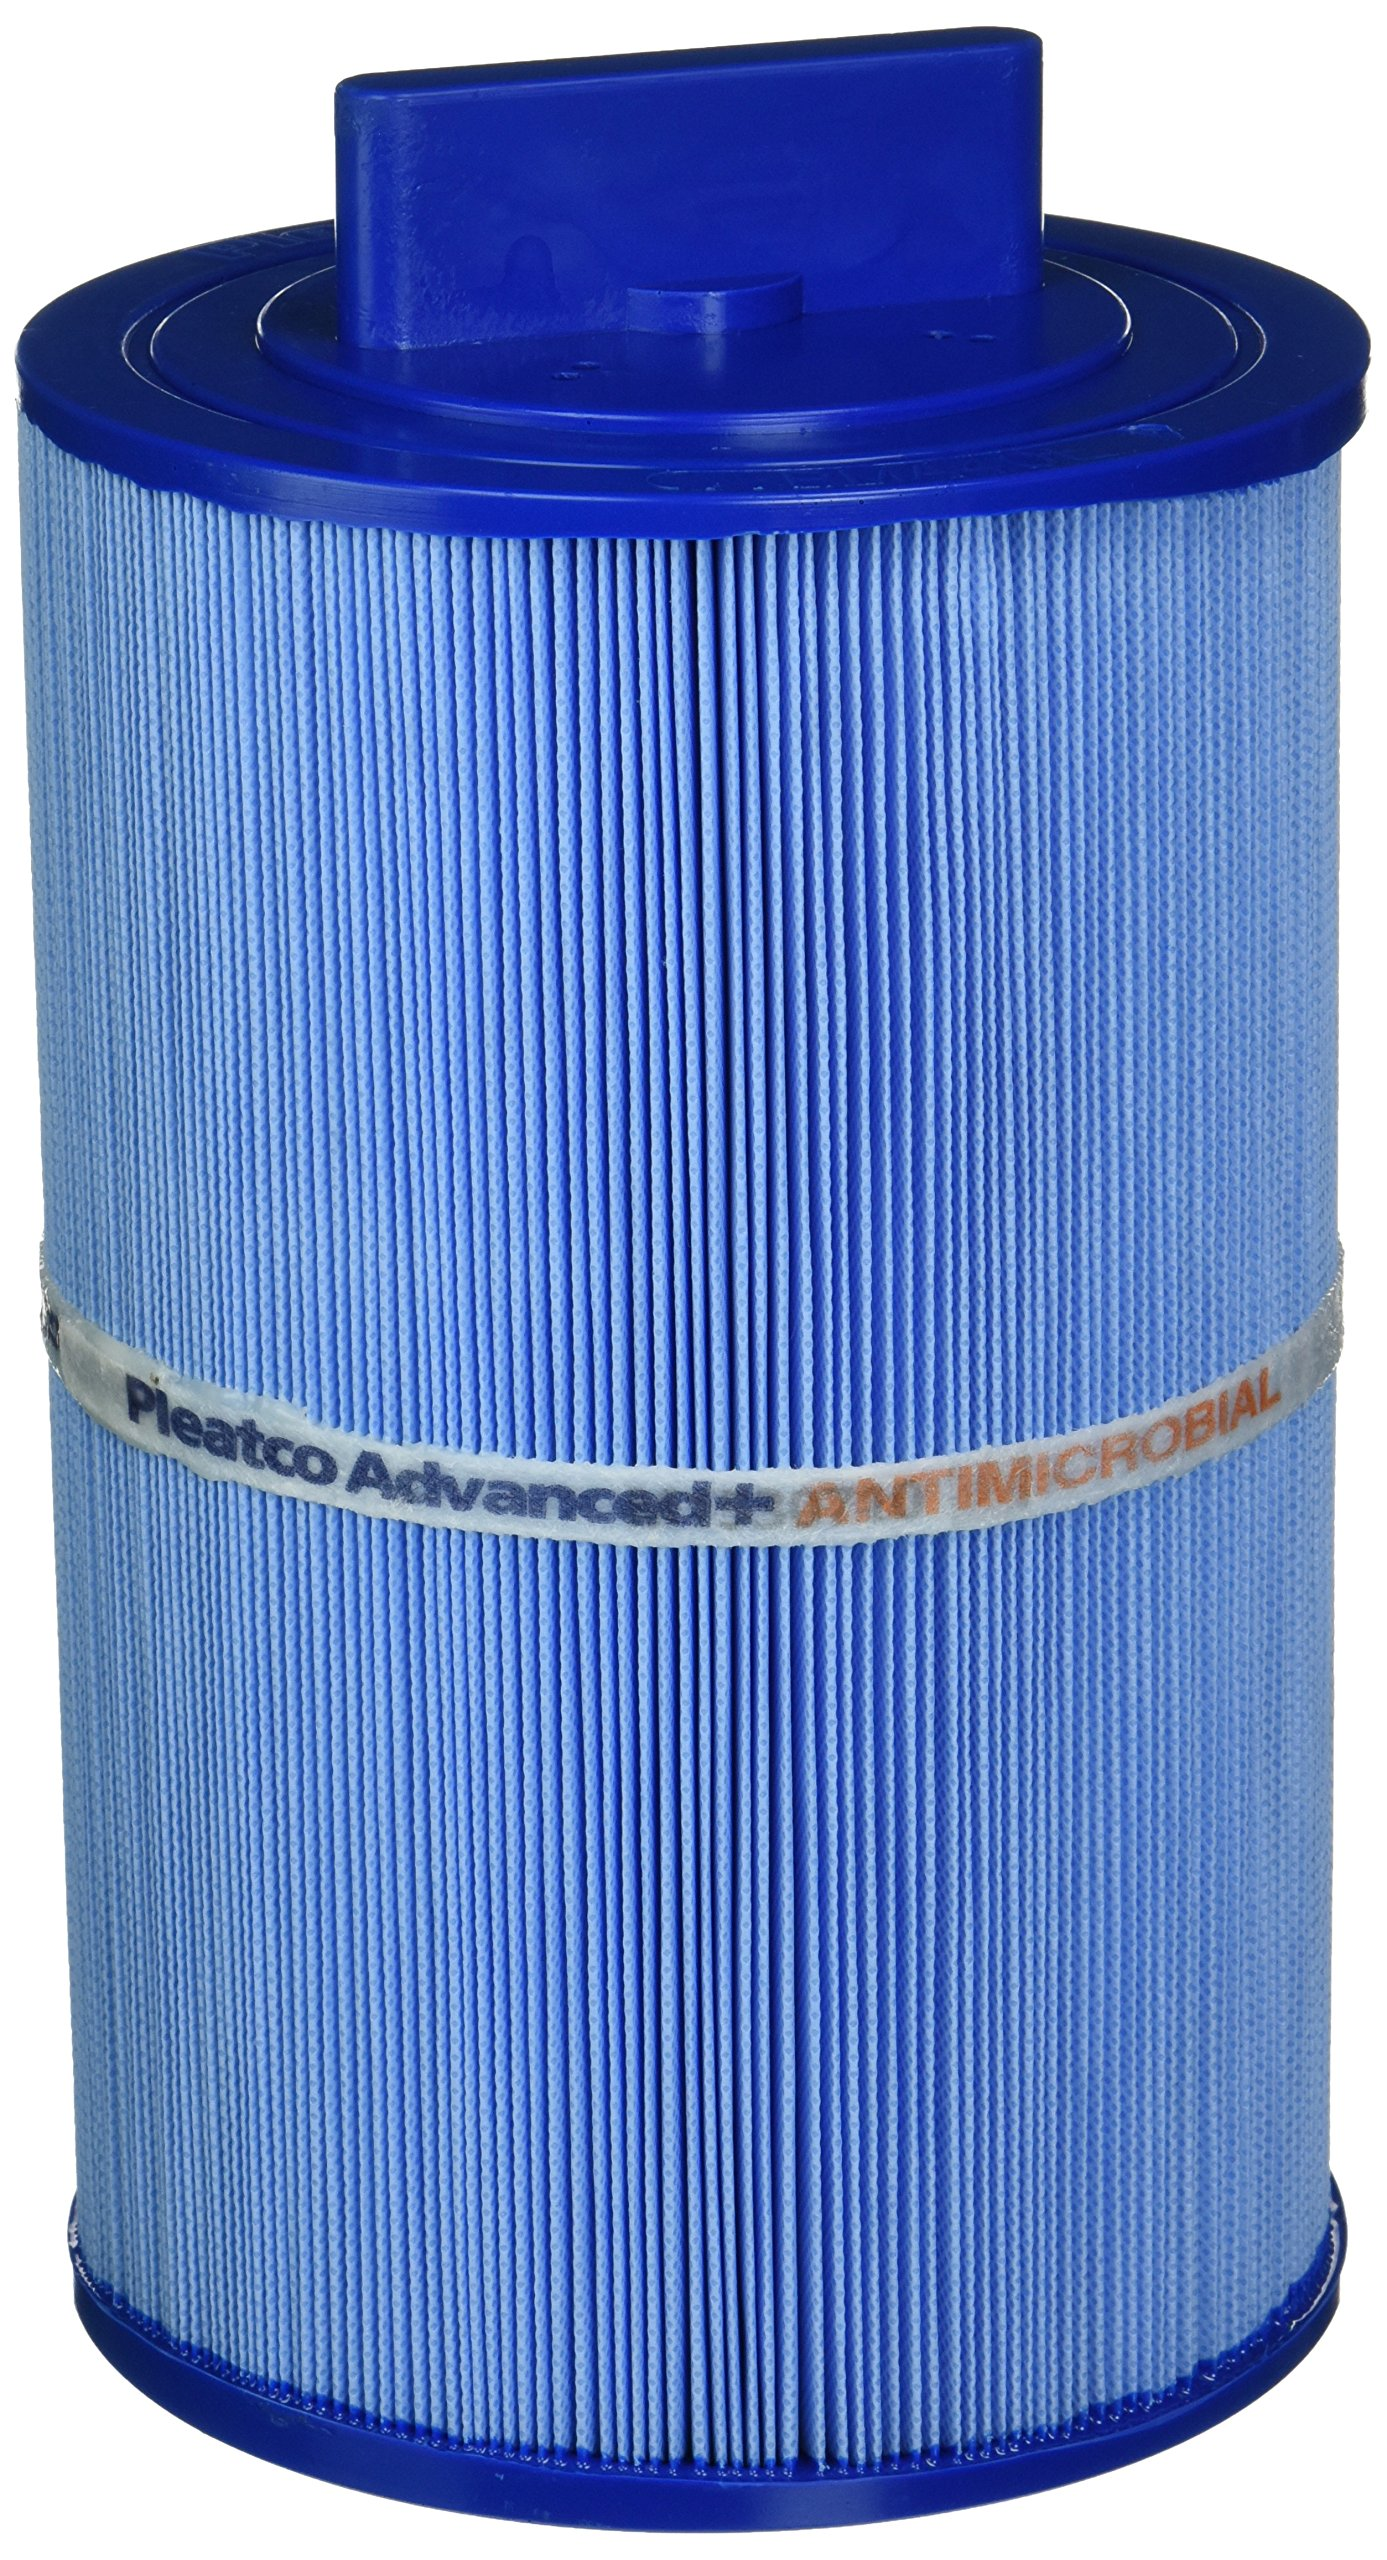 Pleatco LLC Pleatco Replacement Cartridge for MASTER SPAS 40SF LONG ANTIMICROBIAL Cartridge, 1 Cartridge - PMA40L-F2M-M SPG by Pleatco